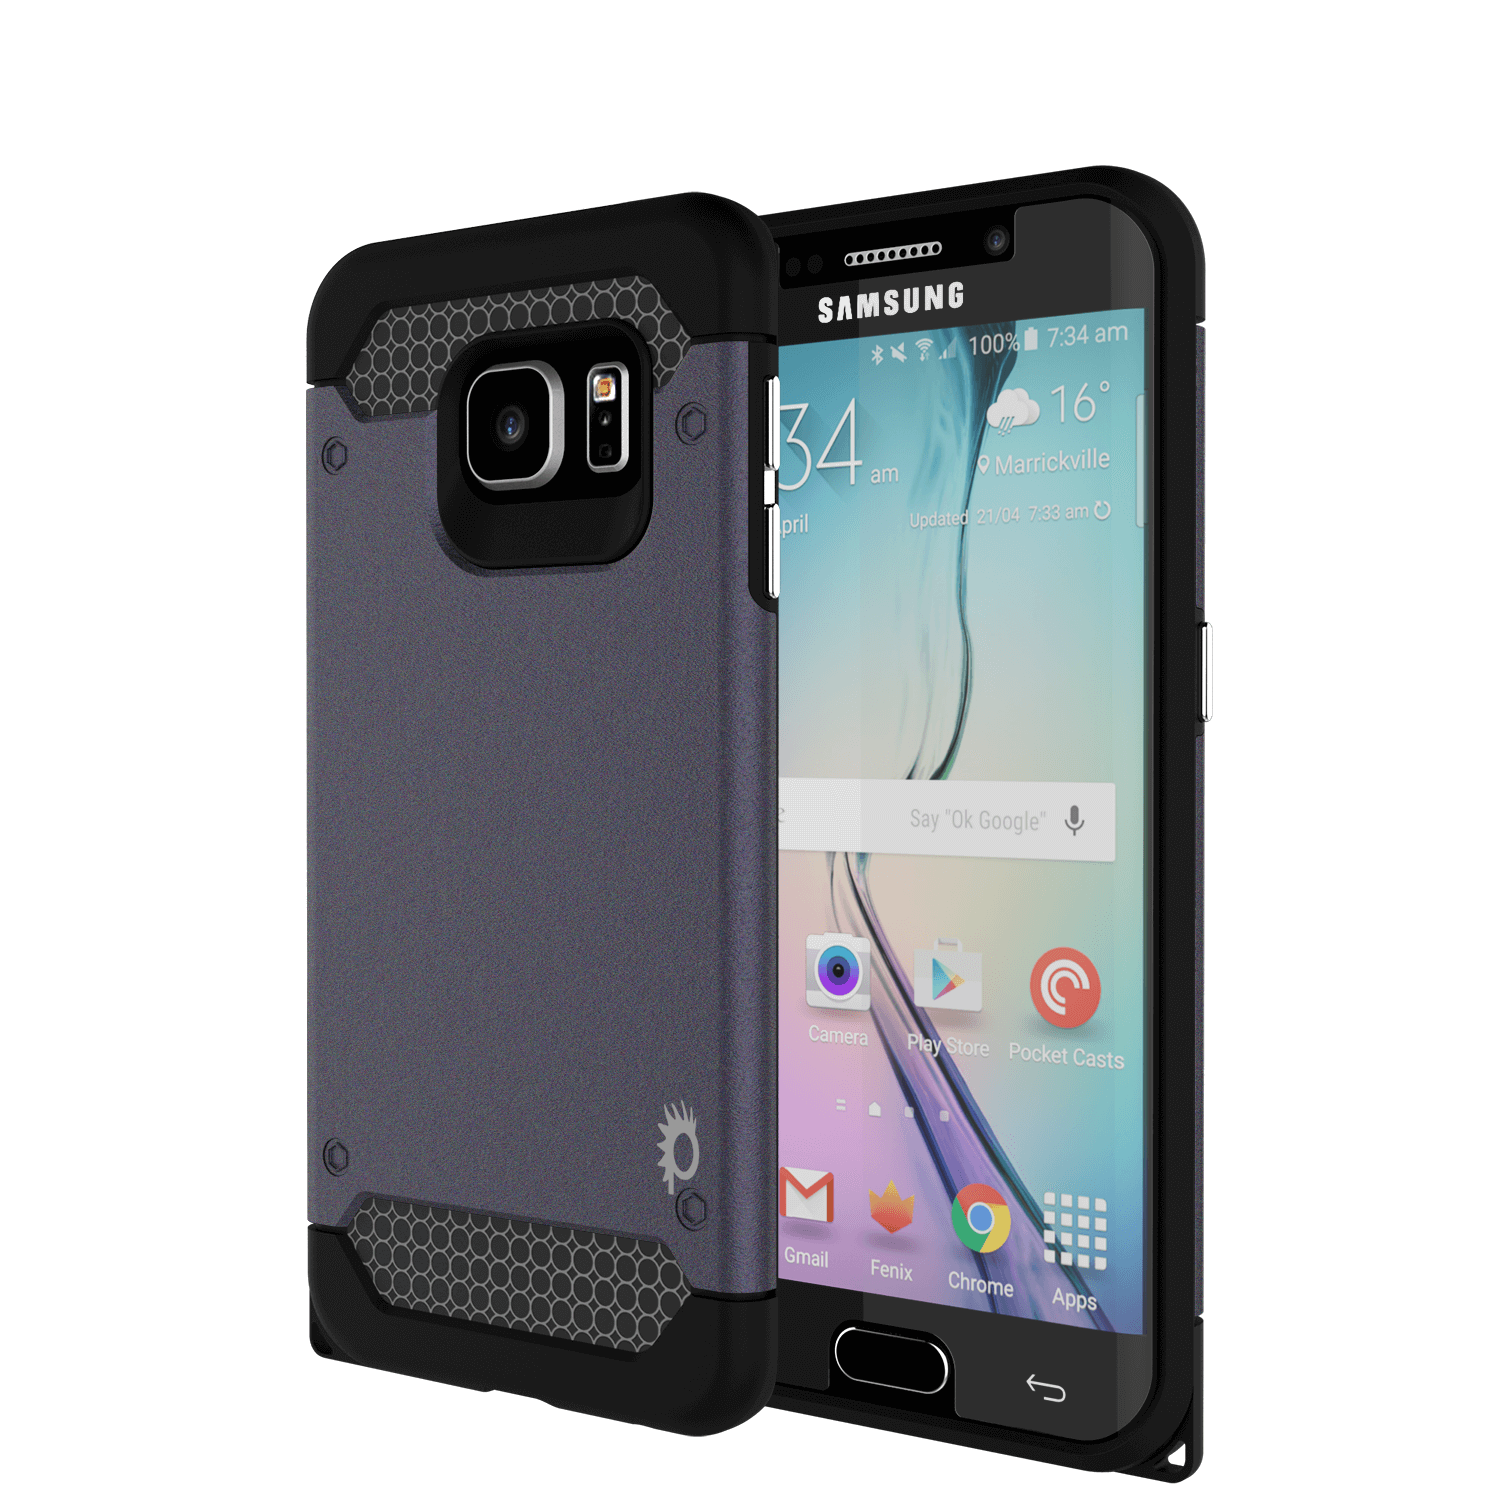 Galaxy s6 EDGE Case PunkCase Galactic Black Series Slim Armor Soft Cover w/ Screen Protector